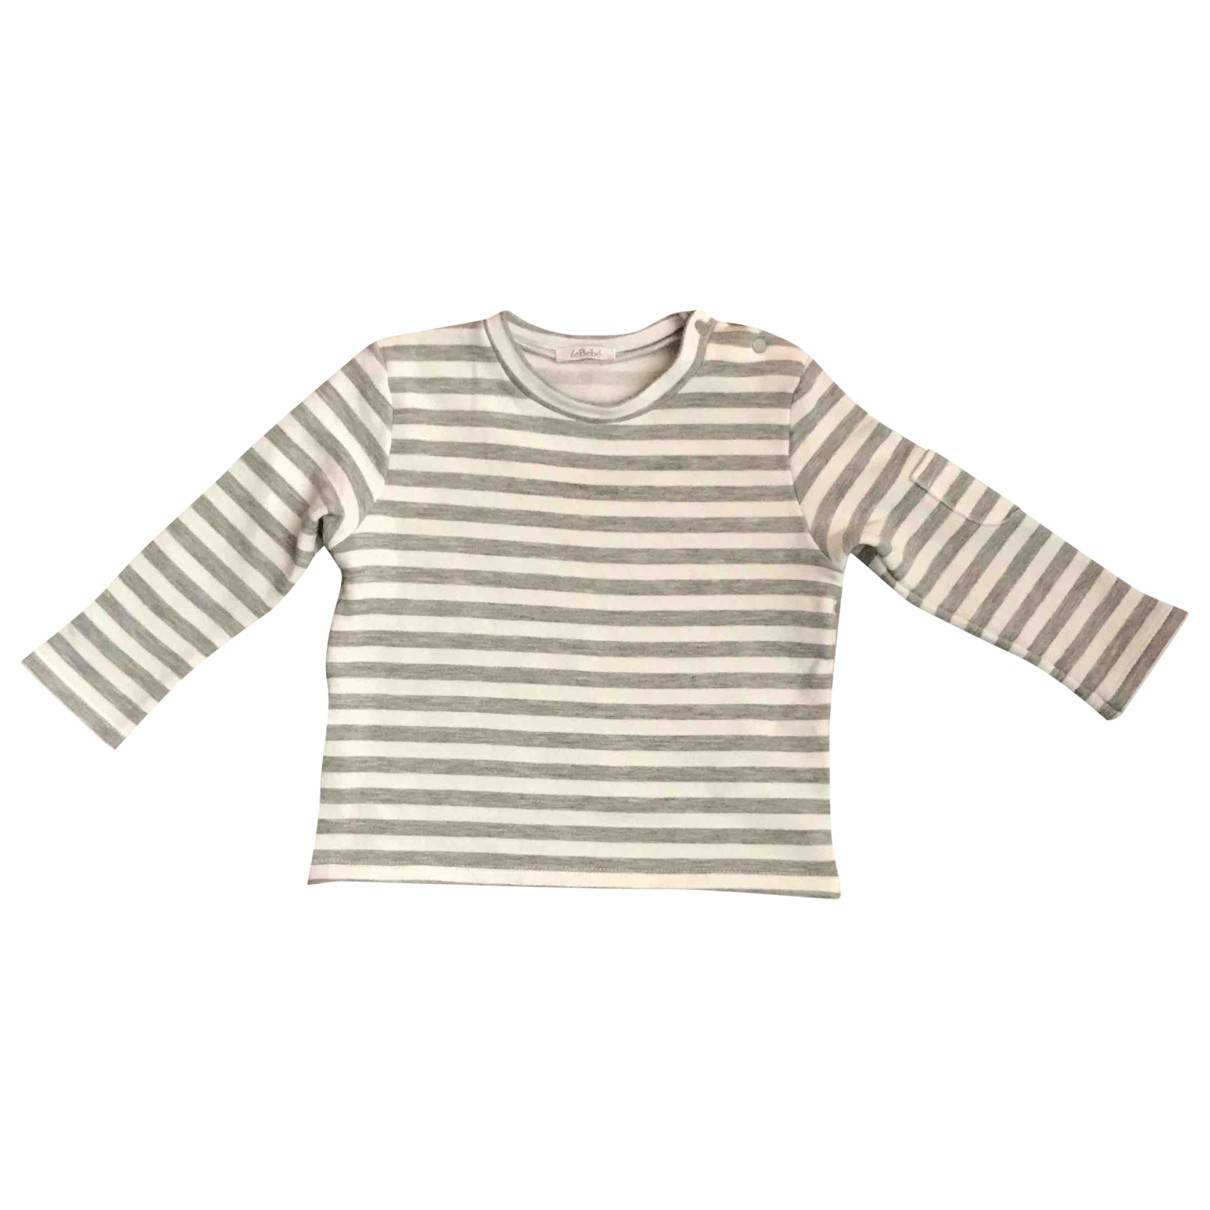 Le Bebe \N White Cotton  top for Kids 9 months - up to 71cm FR